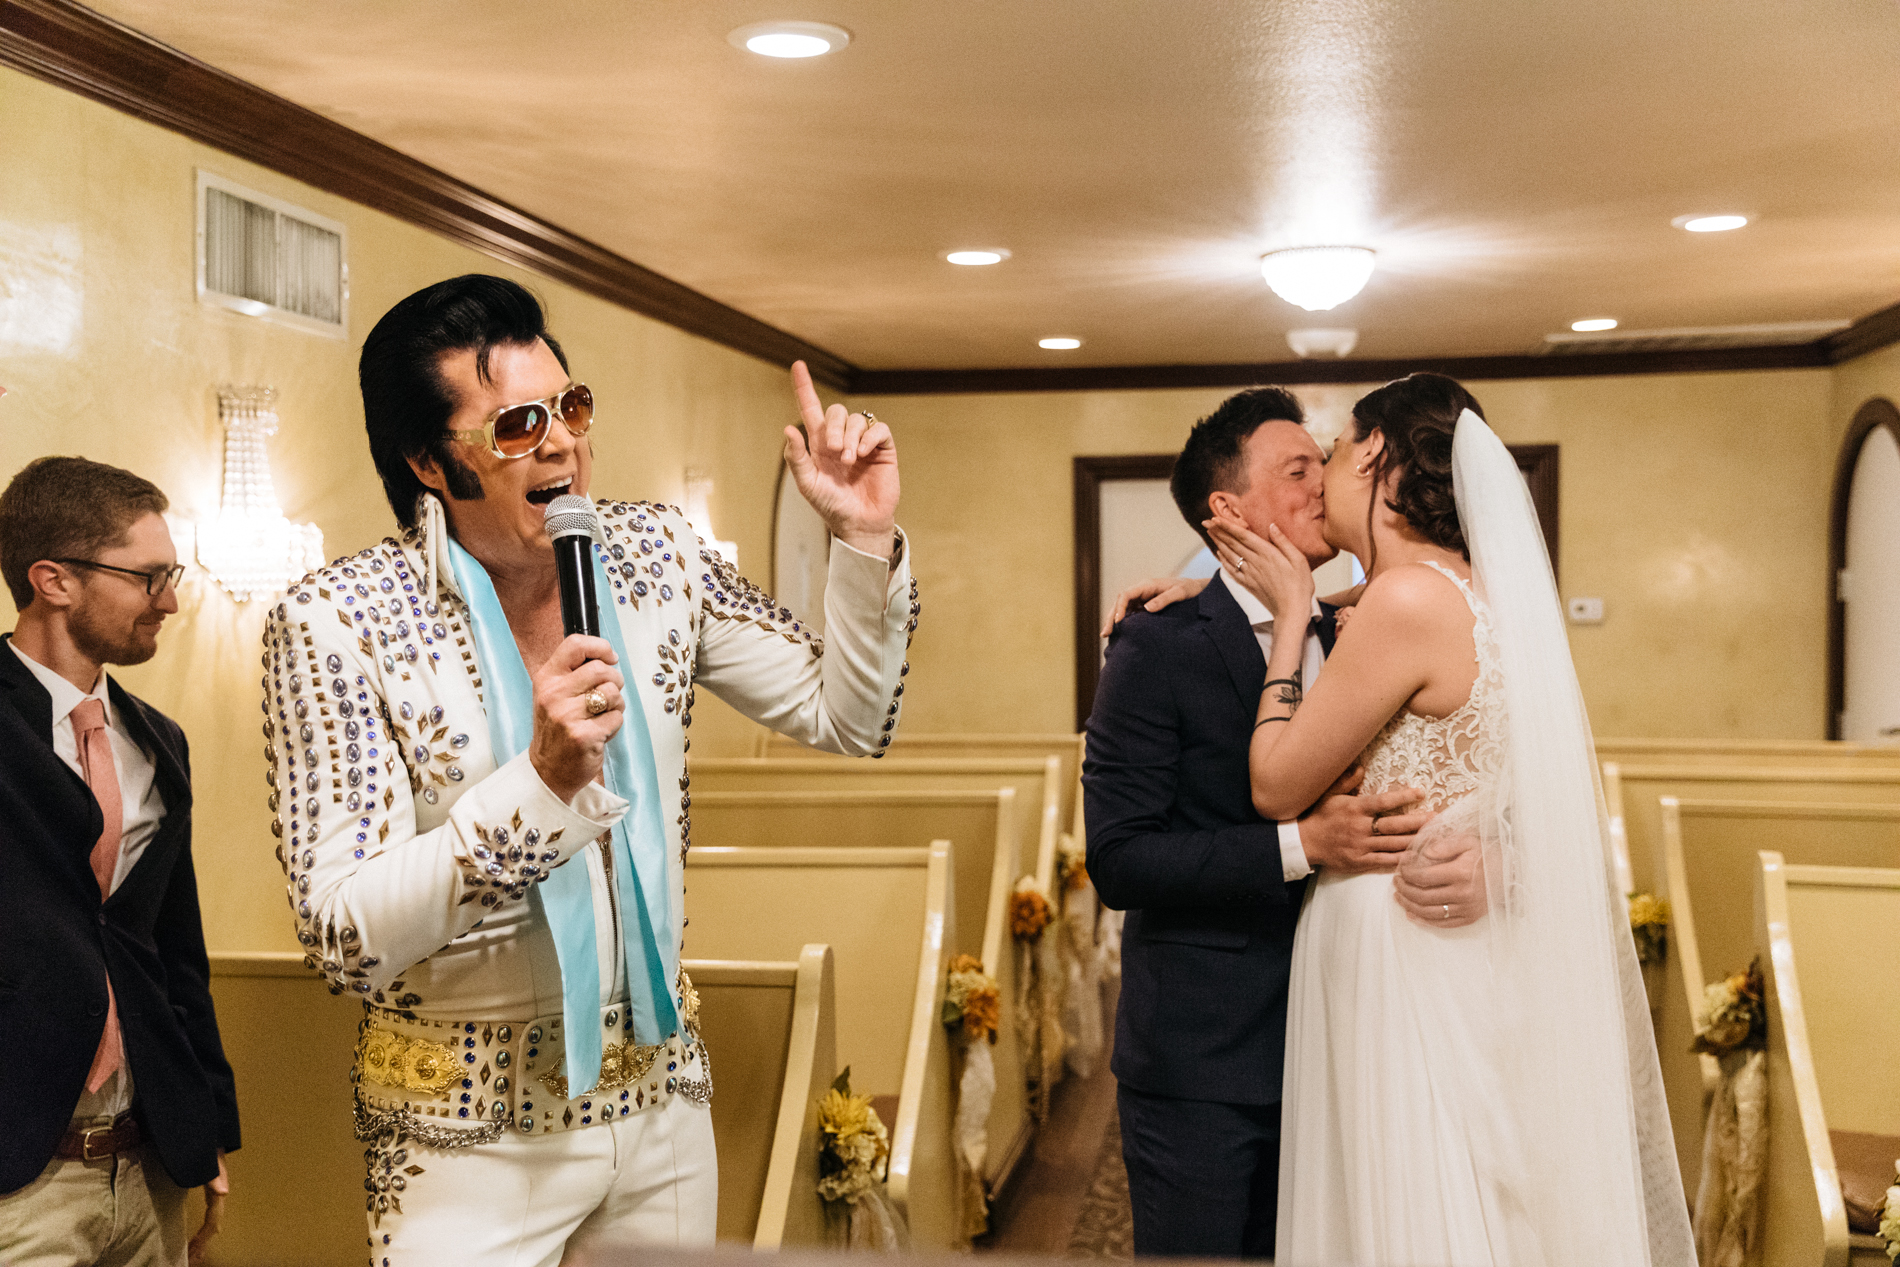 Graceland Wedding Chapel: The First Chapel With an Elvis Impersonator